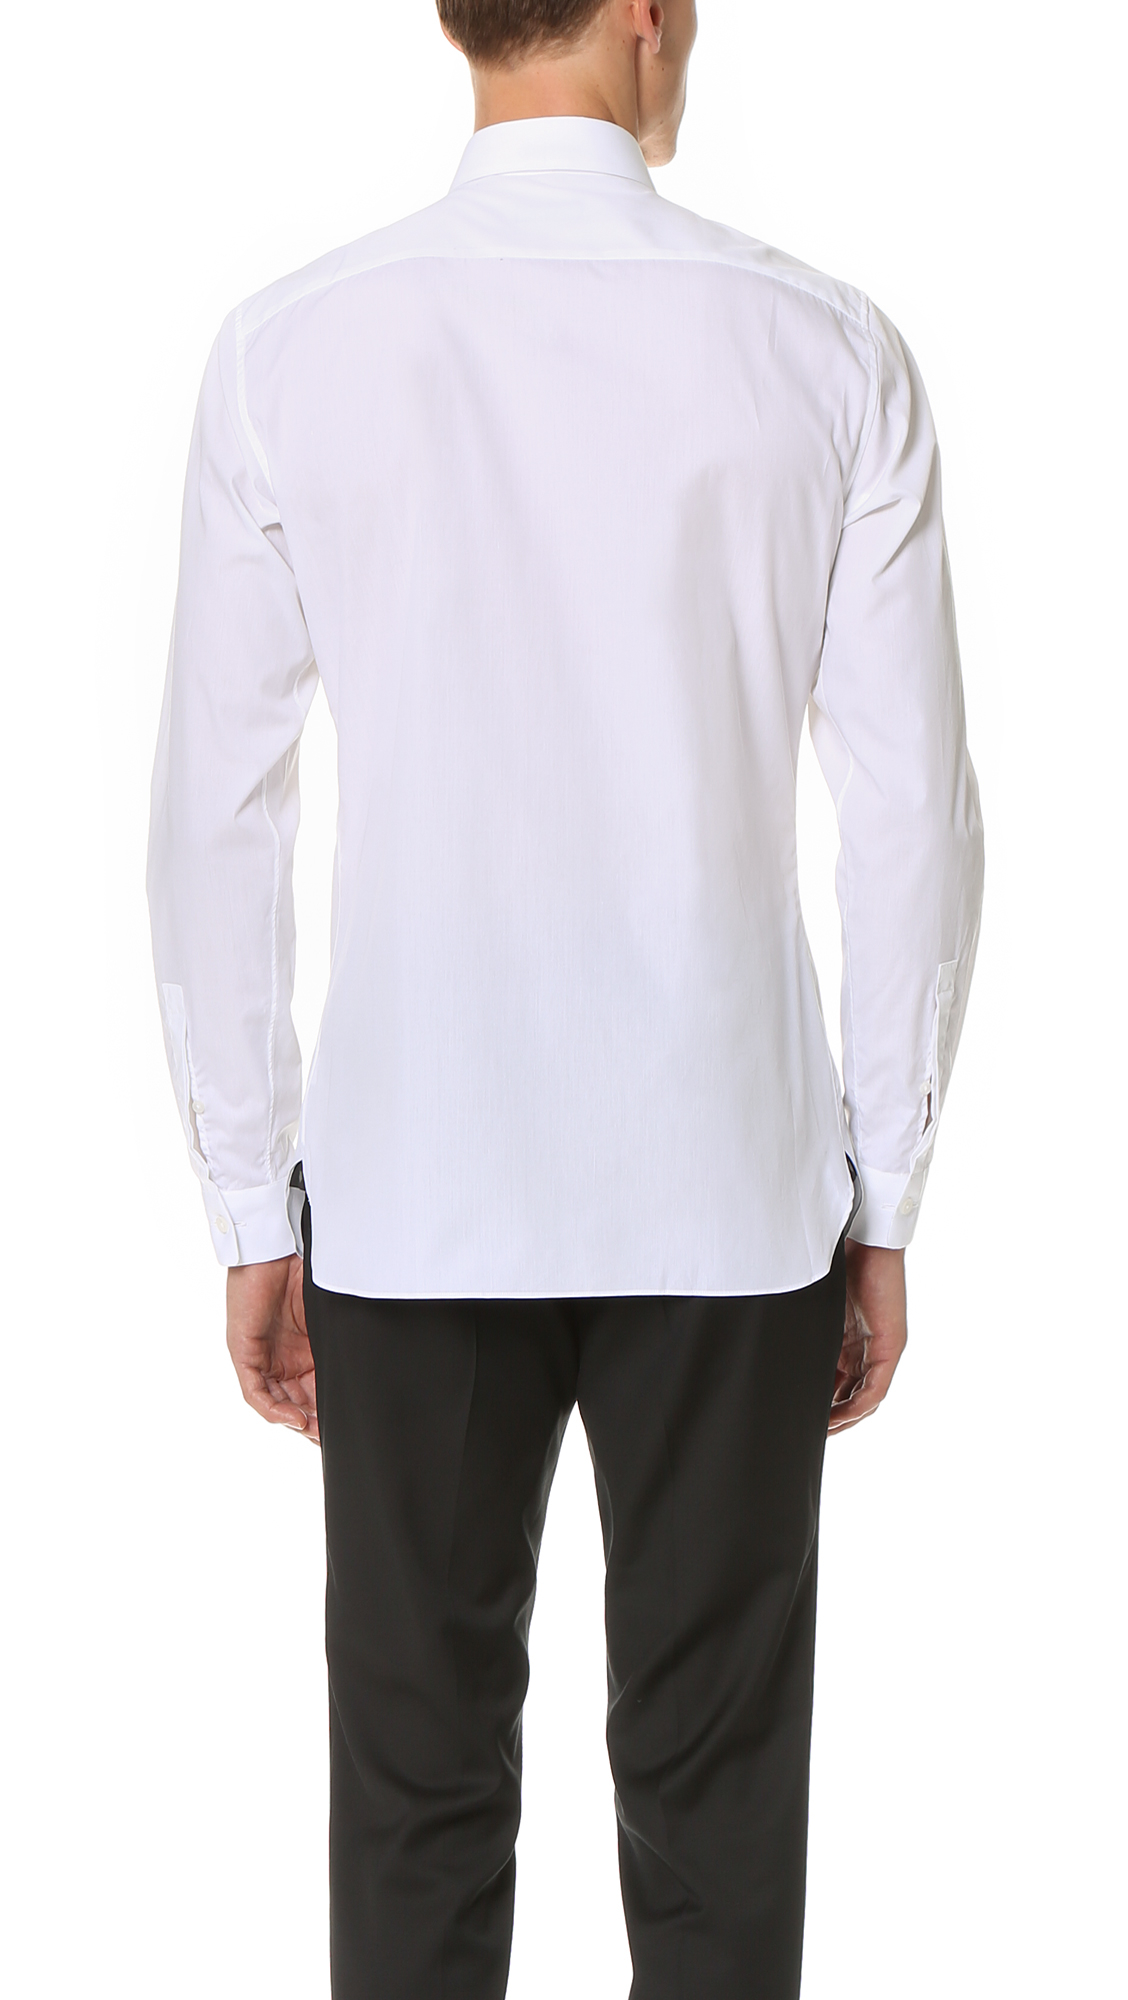 Z Zegna Slim Fit Tuxedo Shirt In White For Men Lyst